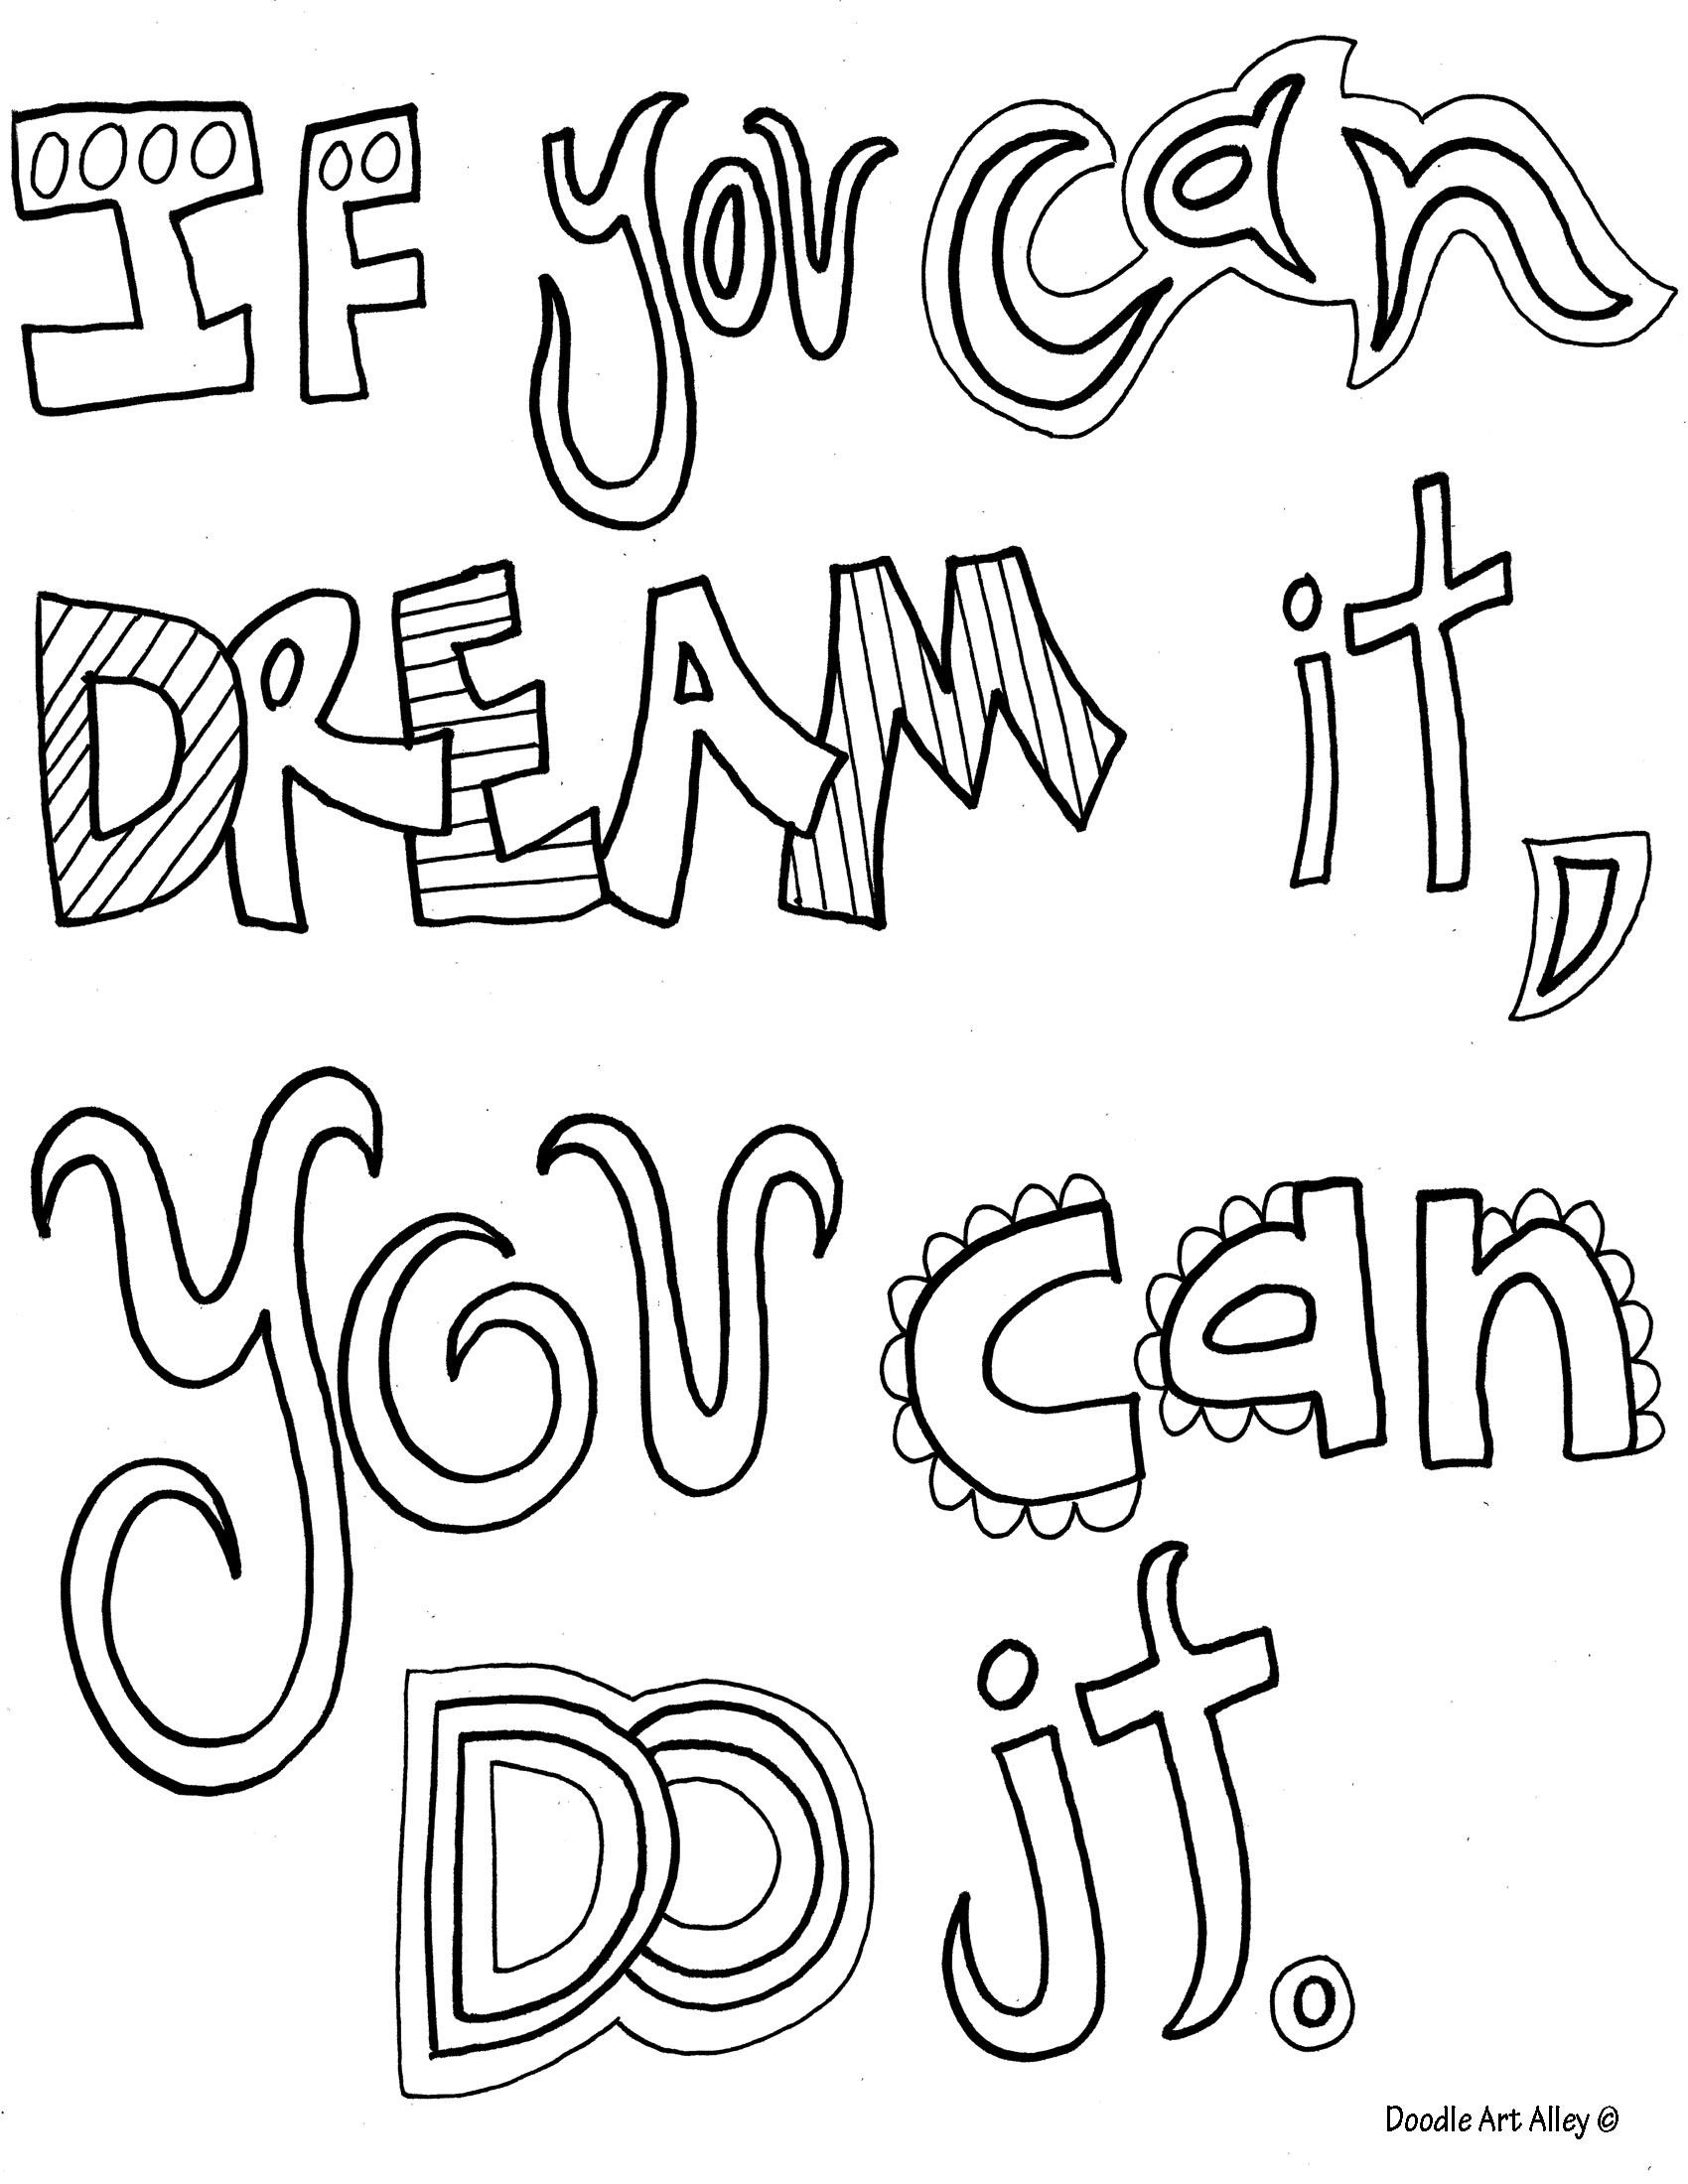 Walt Disney Quote Coloring Pages Inspirational Quotes Coloring